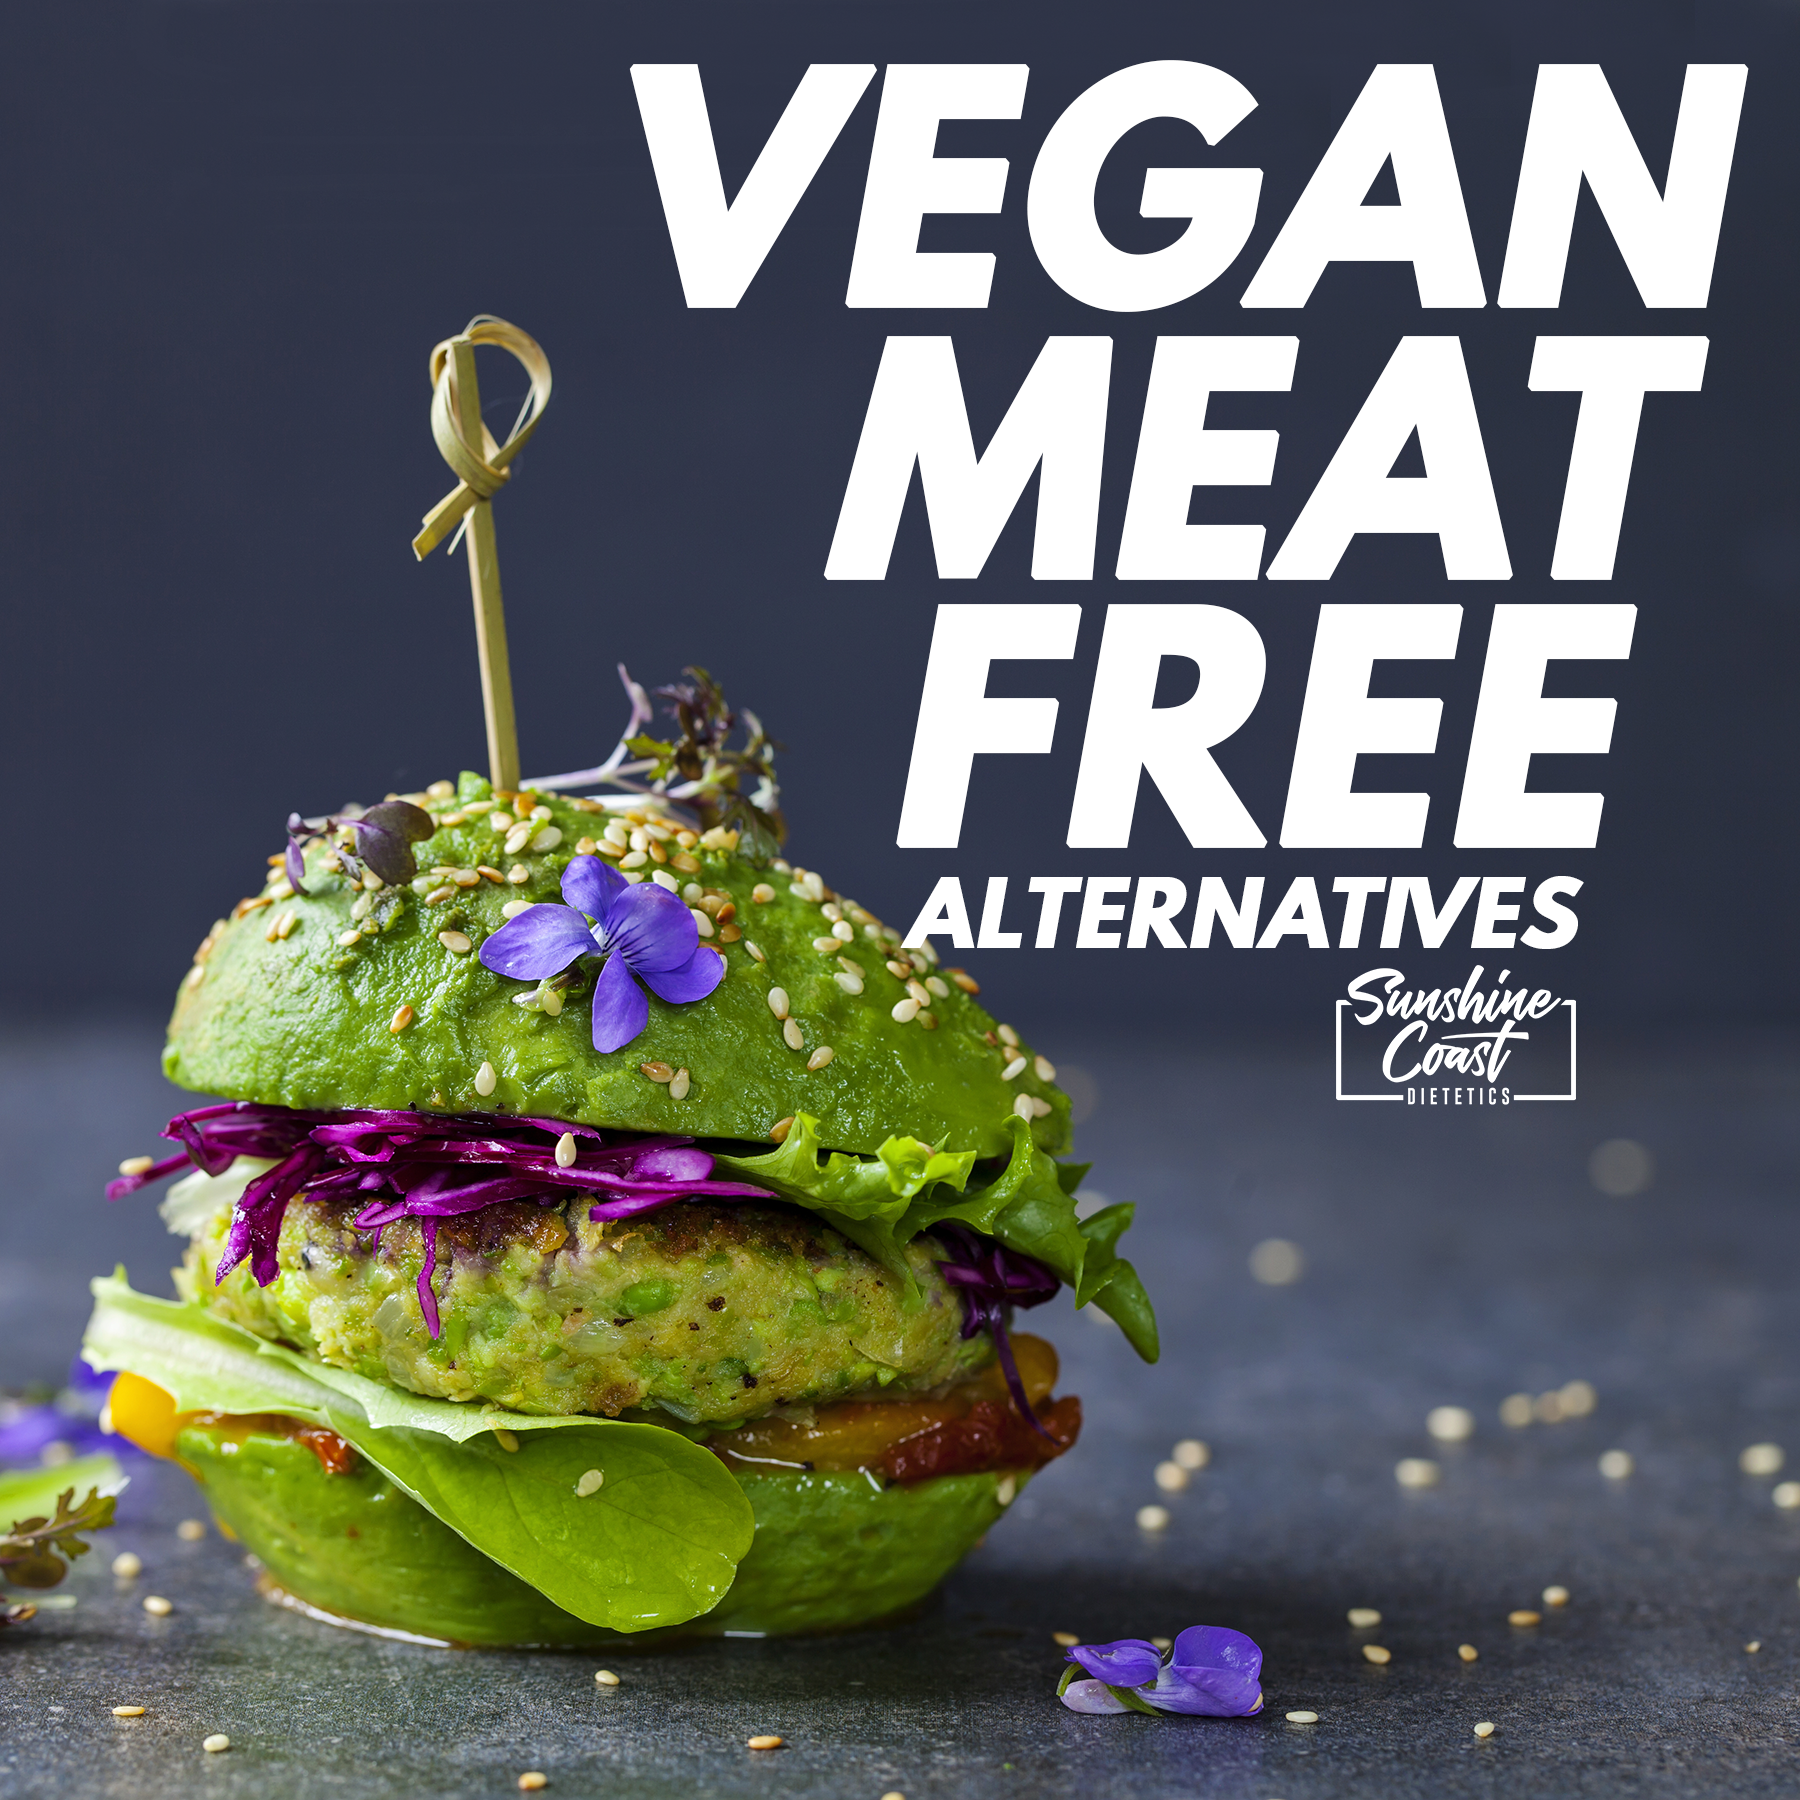 Vegan Meat-Free Alternatives: Dietitian-Approved Facts